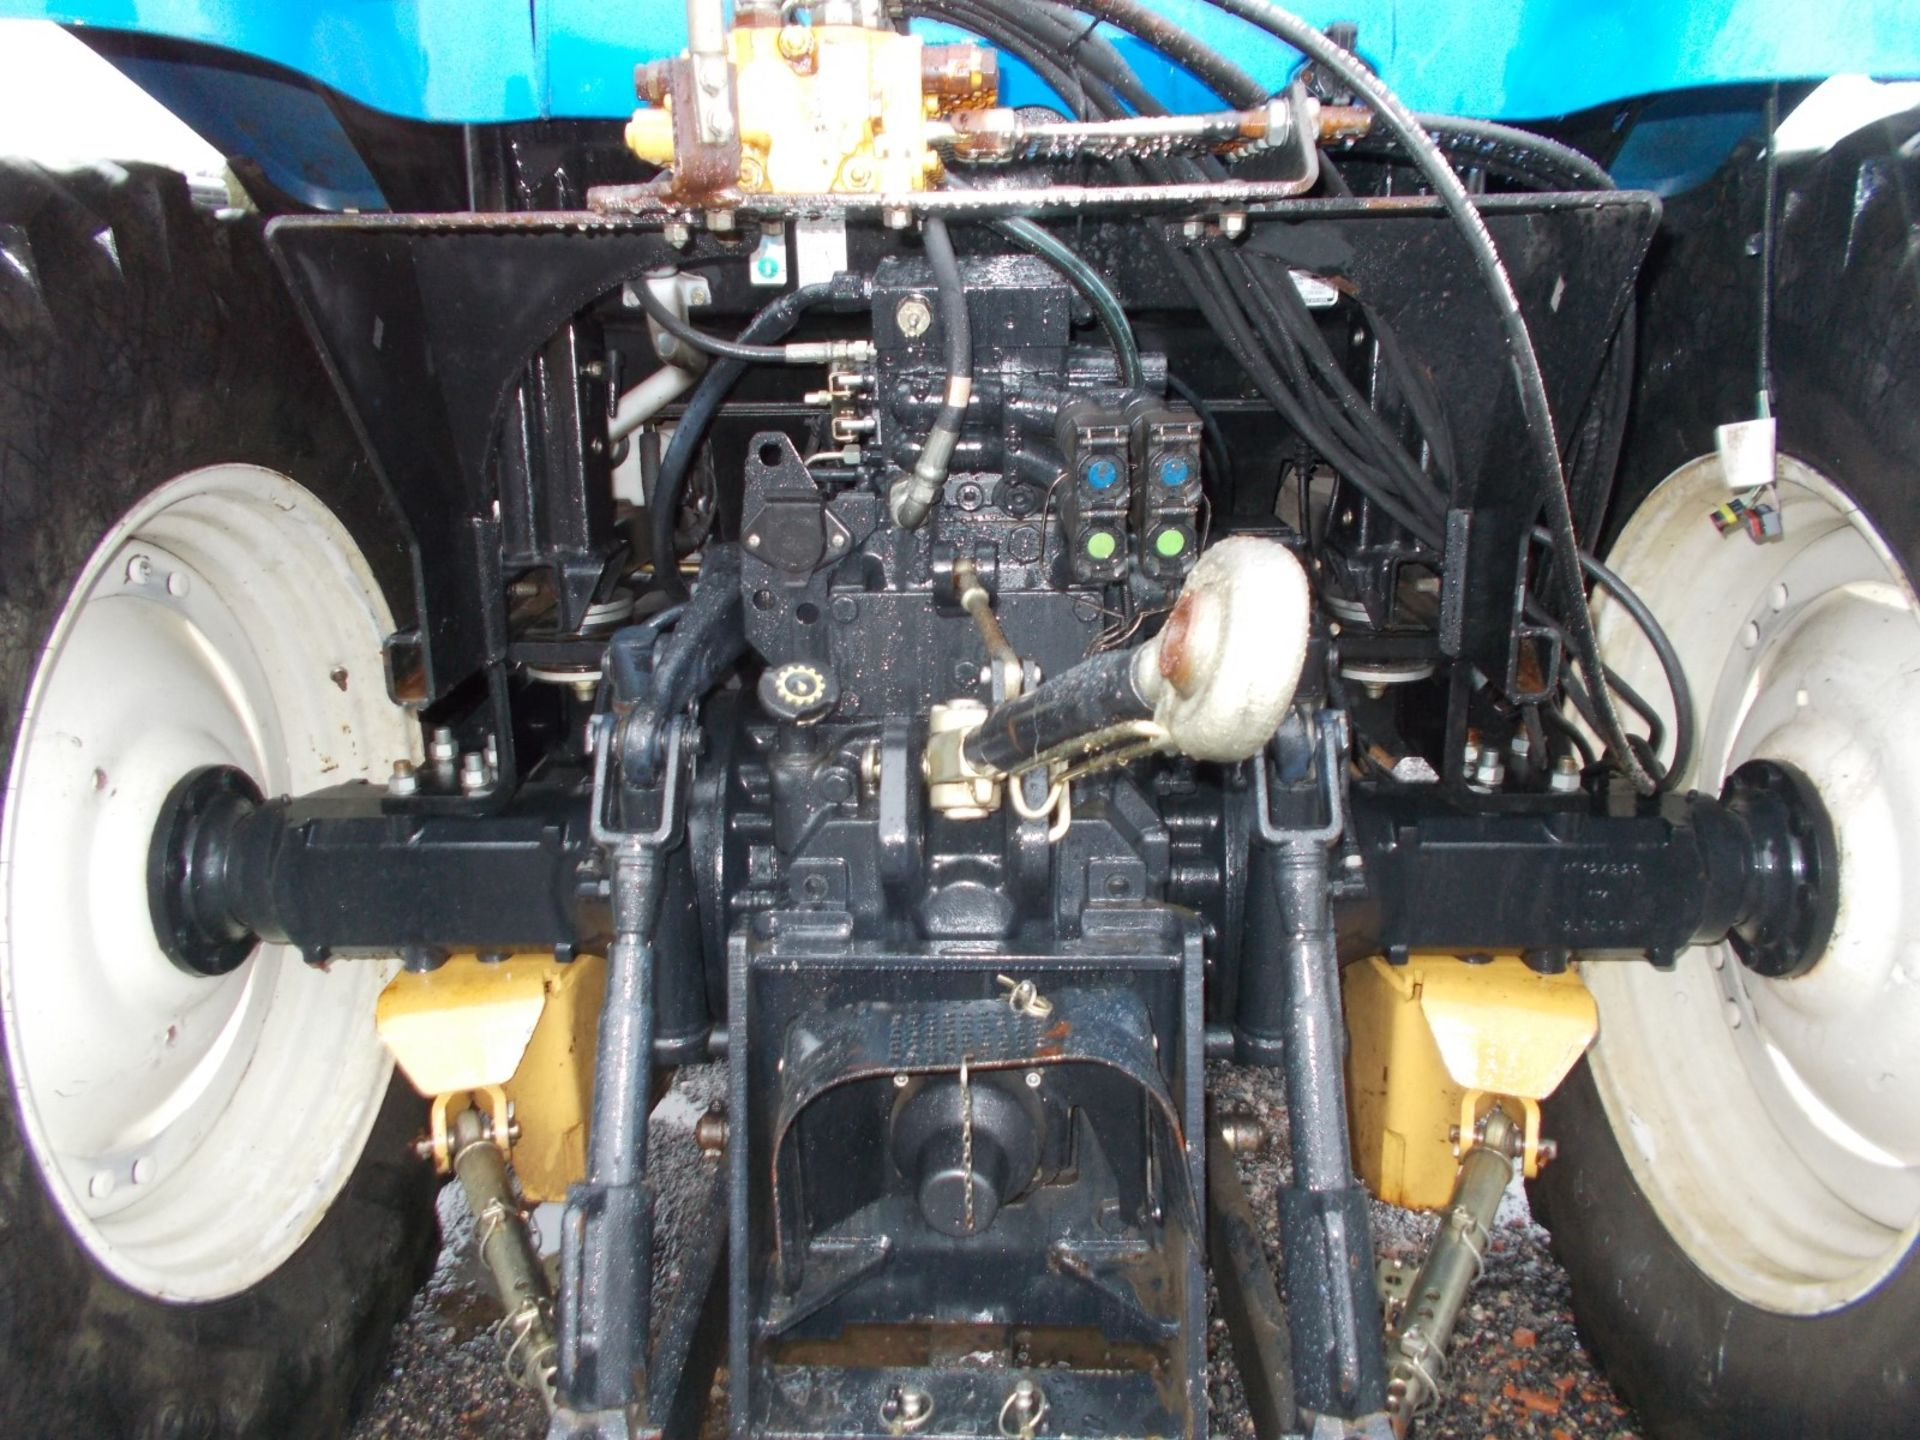 2003 NEW HOLLAND TS100A TRACTOR WITH MOWER ATTACHMENT, 4.5 LITRE 100HP TURBO DIESEL *PLUS VAT* - Image 23 of 24